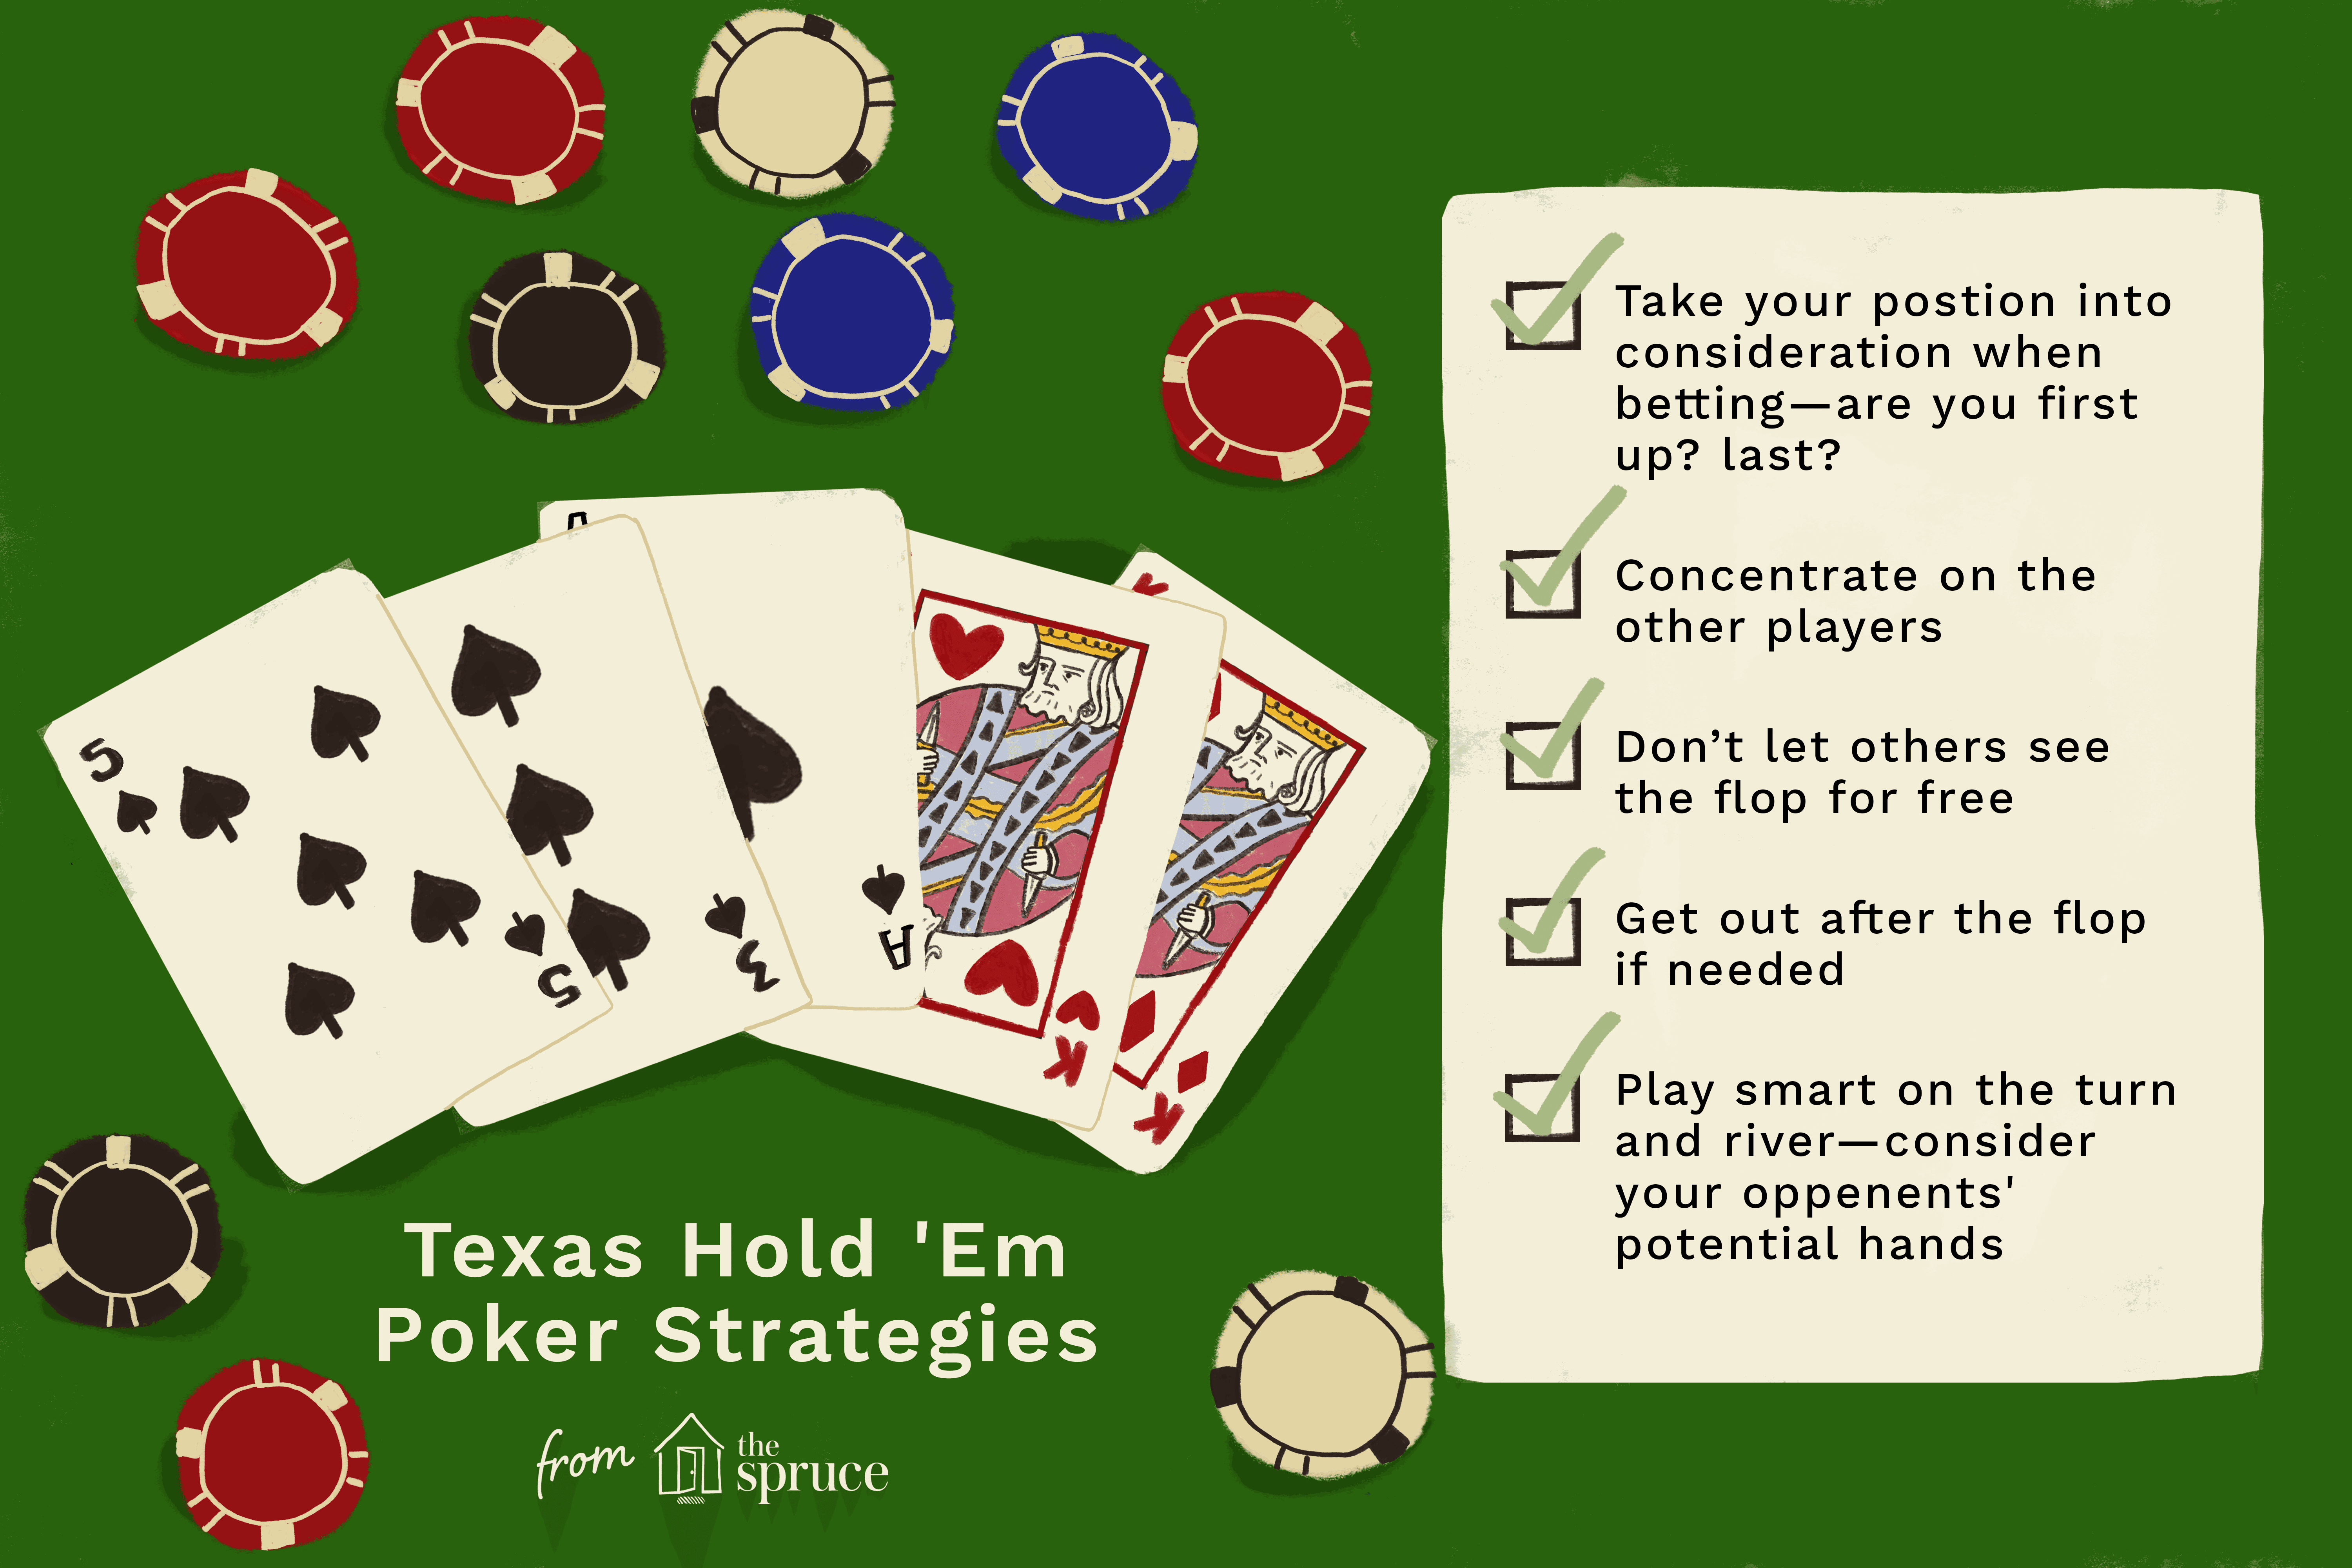 Texas Hold Em Poker Is A Game That Rewards Good Play Follow These Rules To Increase Your Chances Of Winning Texas Holdem Poker Video Poker